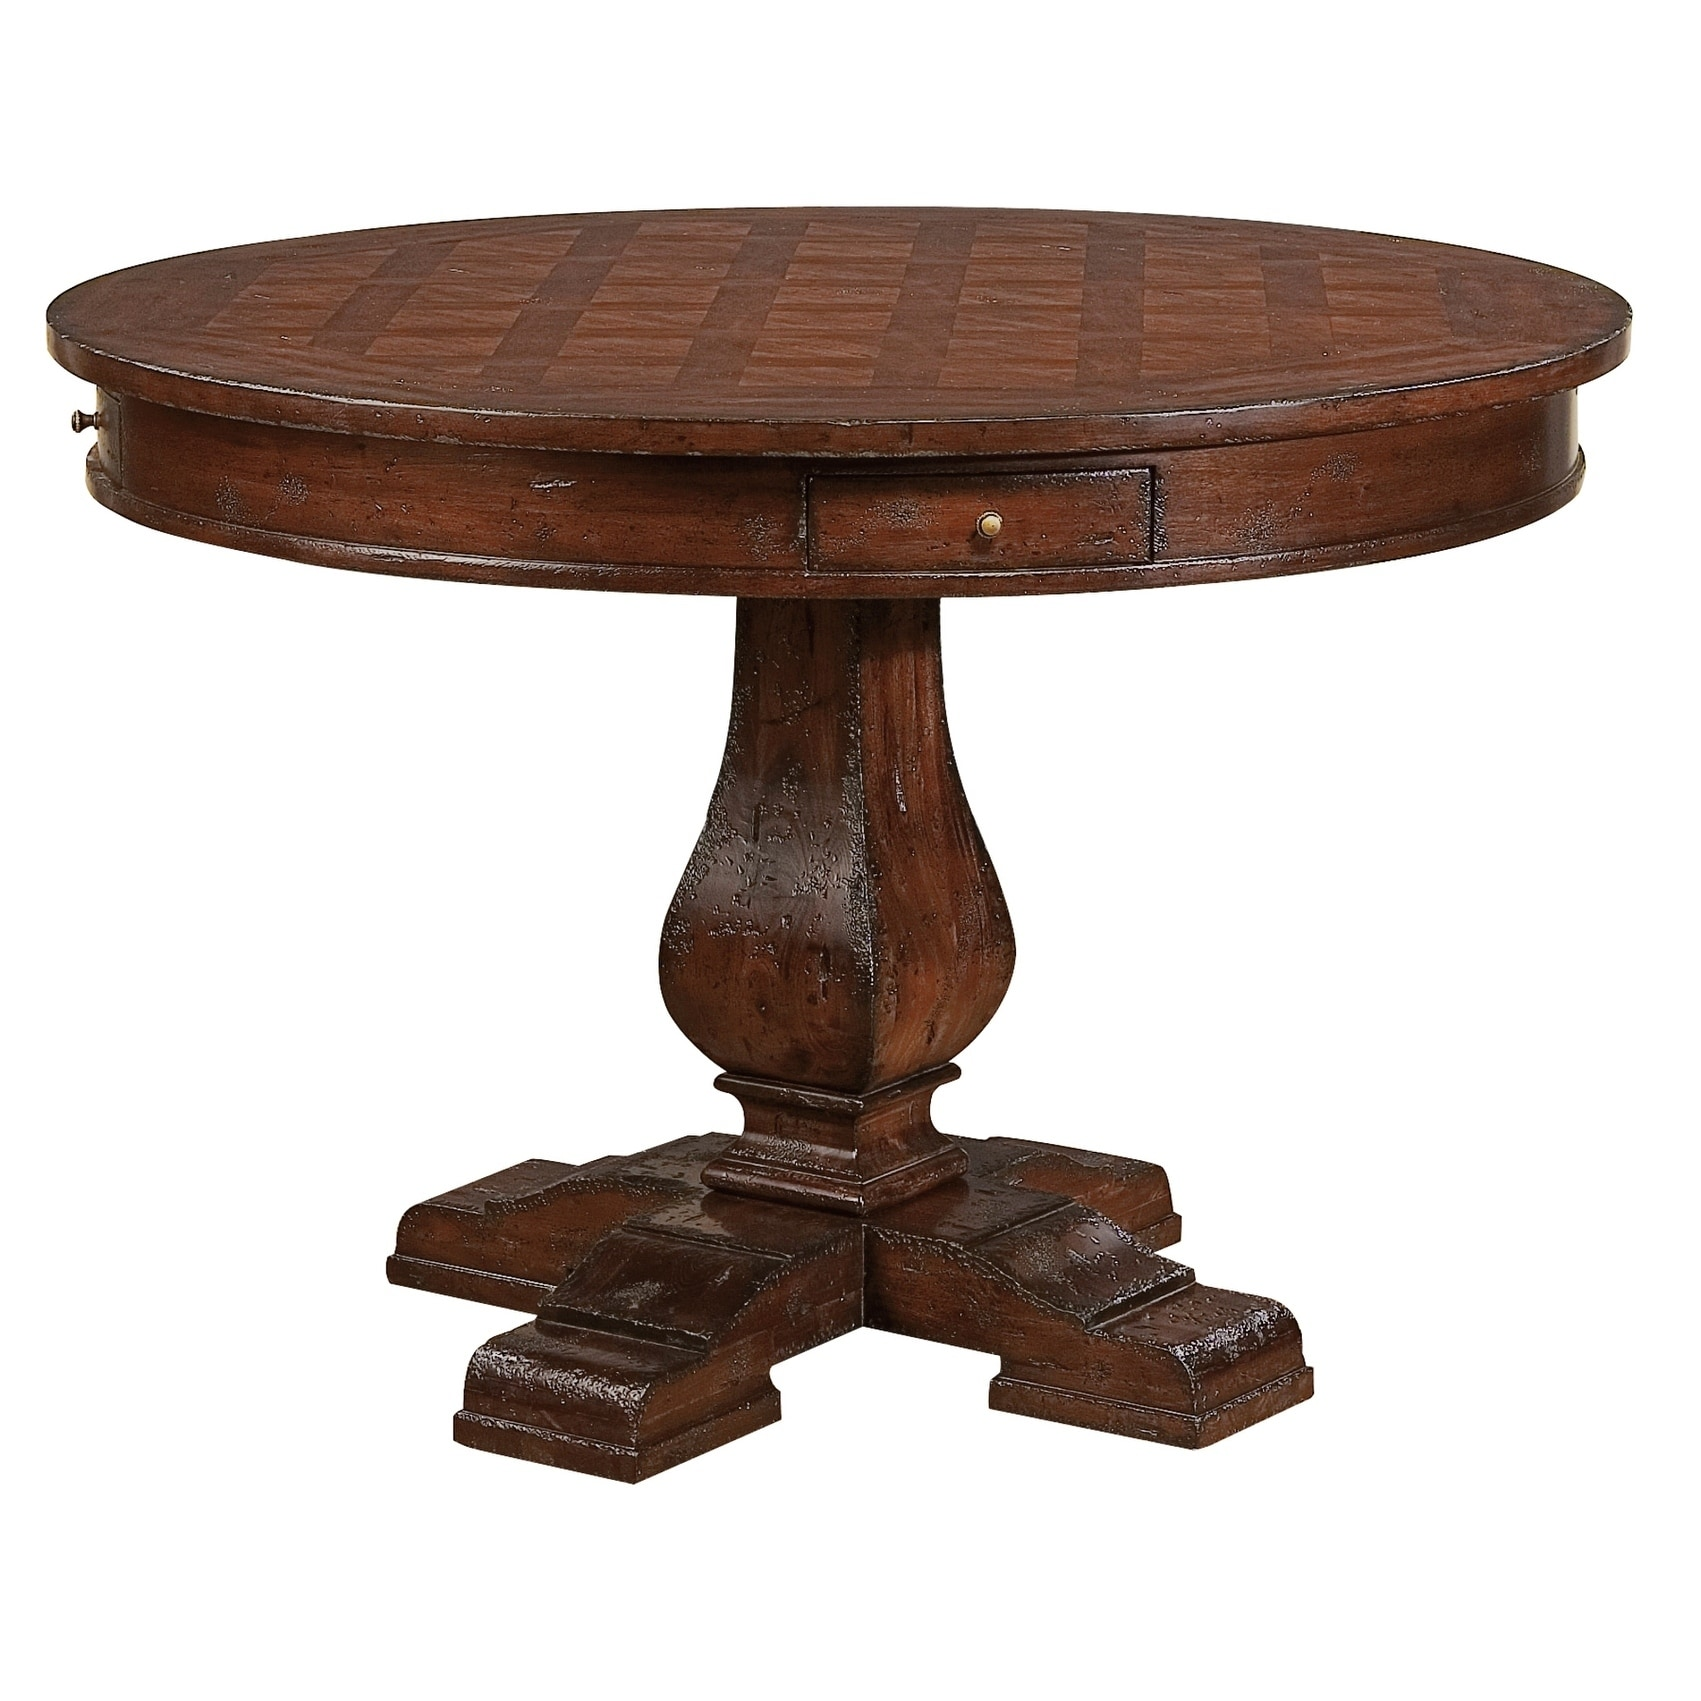 Hekman Furniture Havana Rustic Round Kitchen Dining Table With Drawers 30 In High X 44 Inche In Diameter X 30 36 In High Overstock 24229683